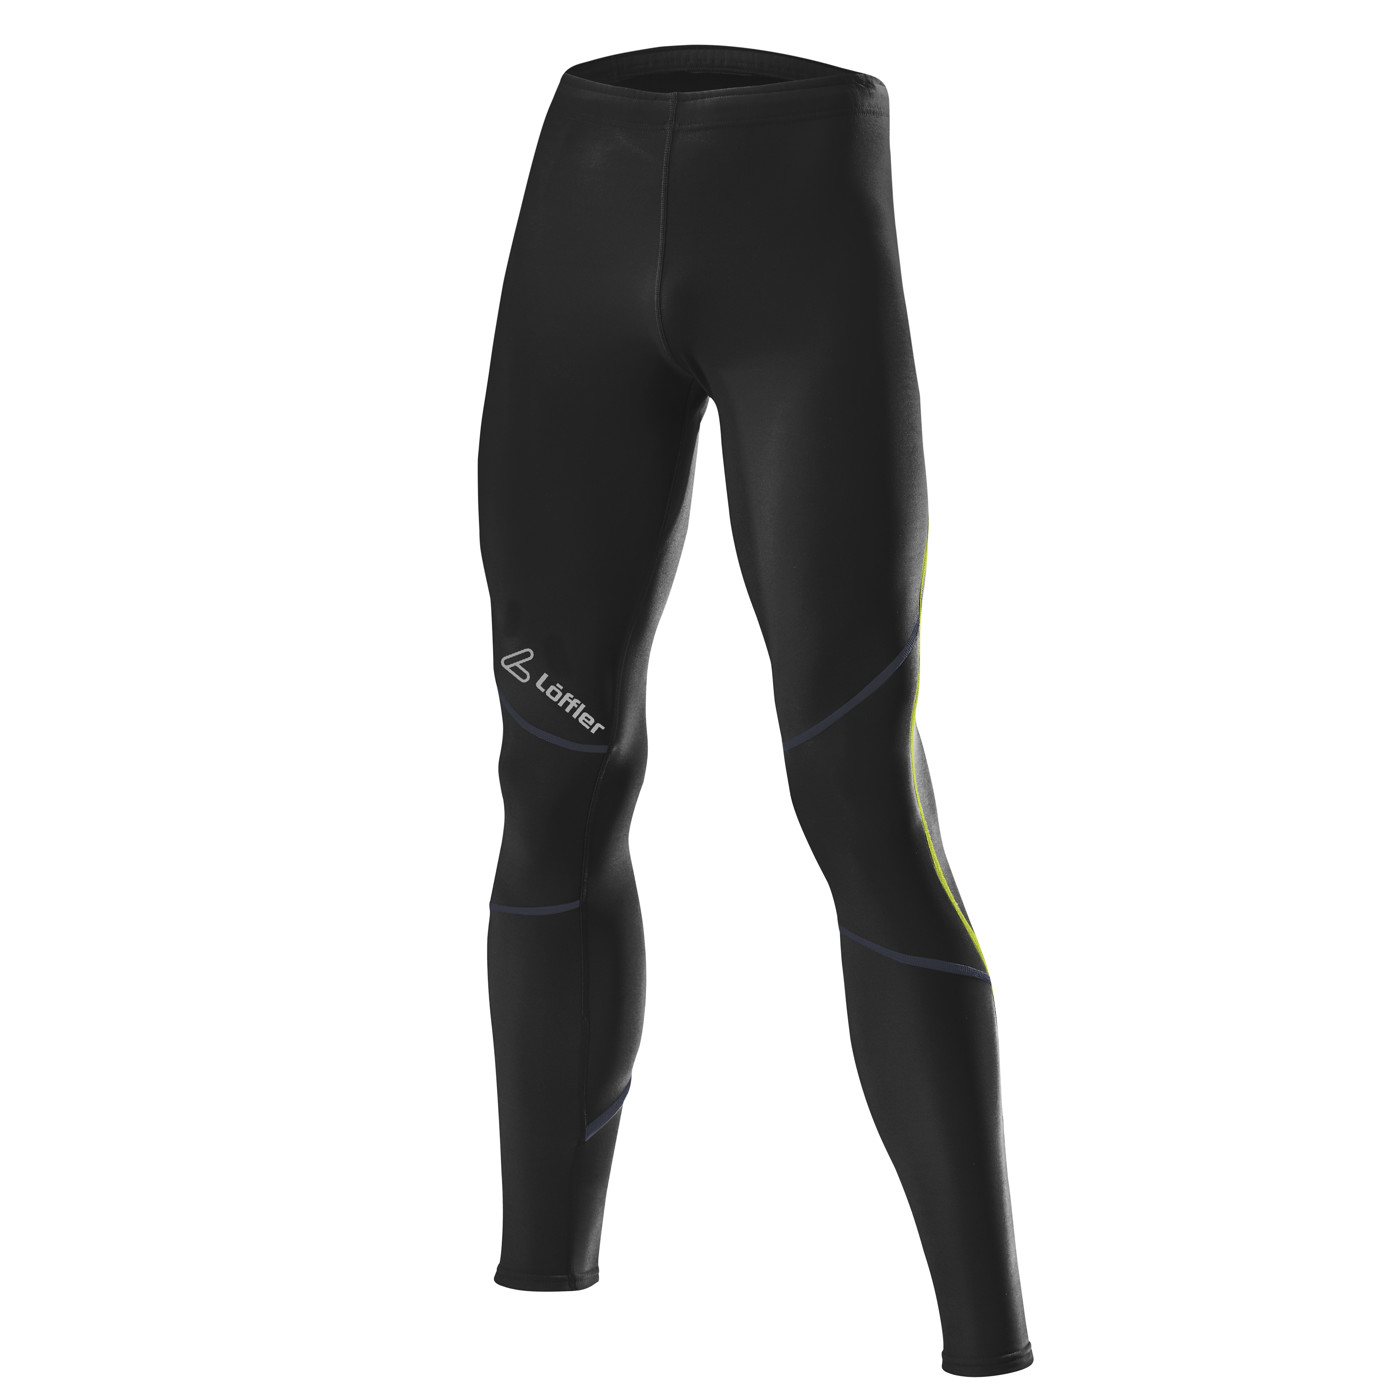 LÖFFLER RUNNING TIGHTS THERMO - Herren